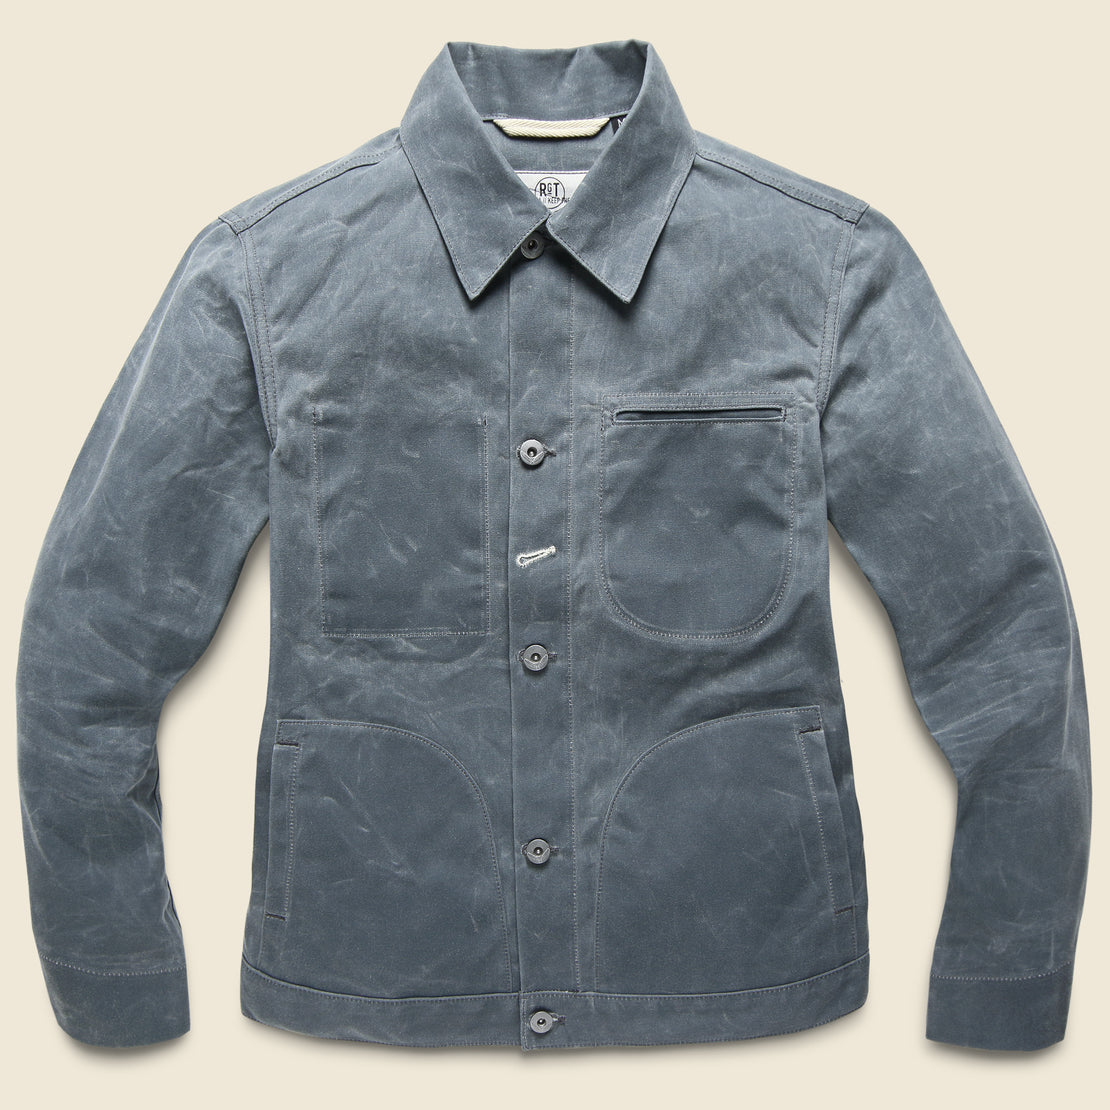 Rogue Territory Waxed Ridgeline Supply Jacket - Grey